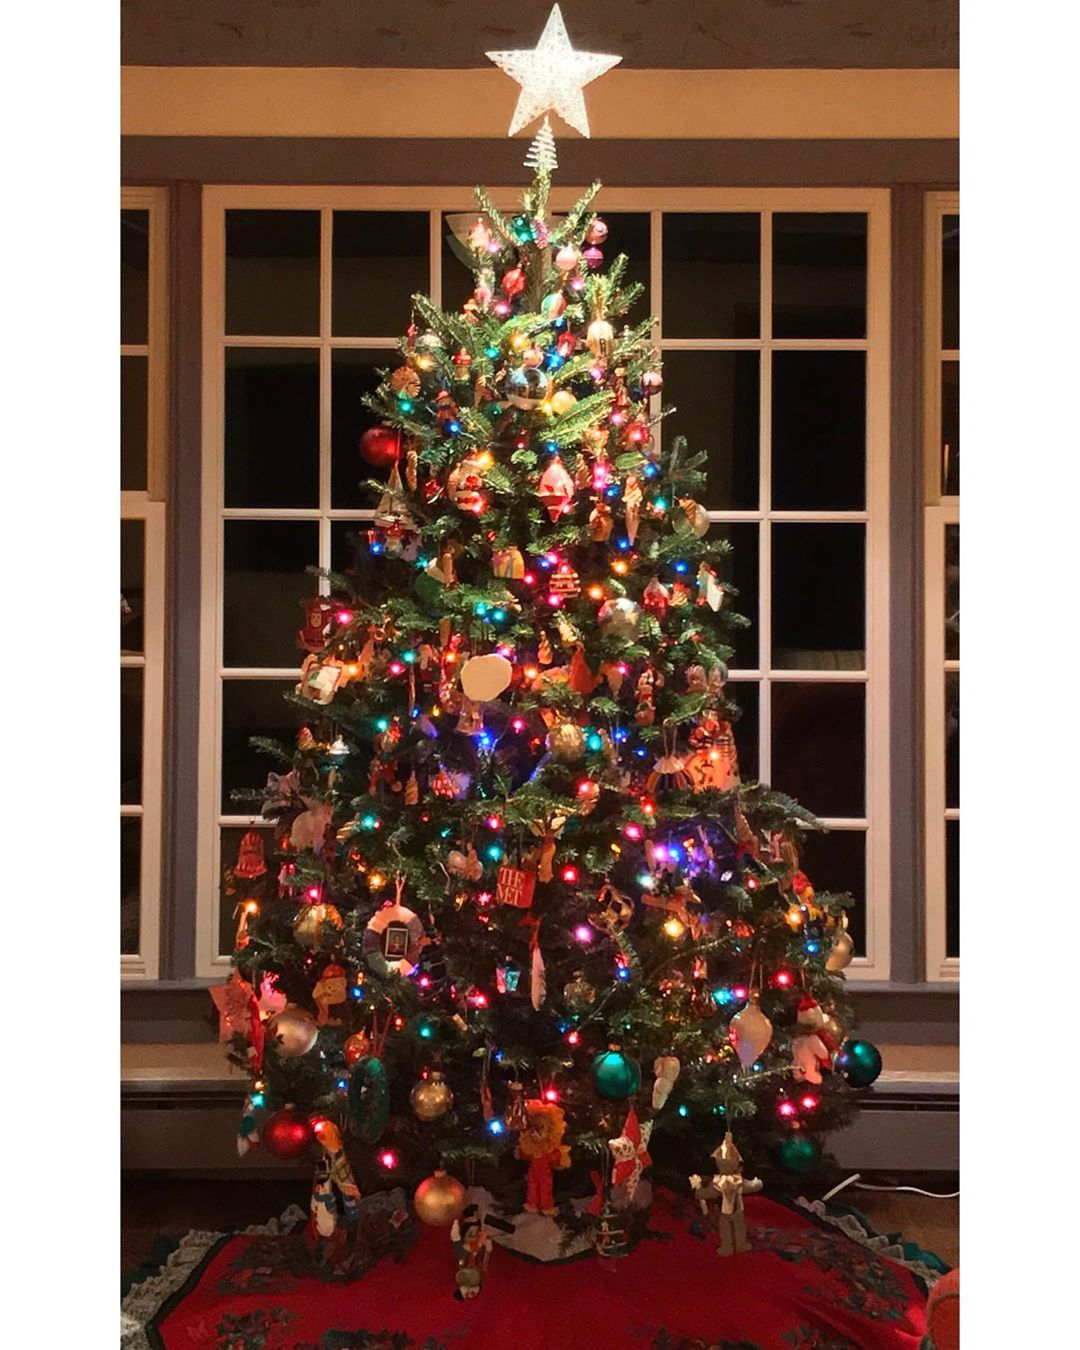 Christmas Tree for Christmas Home Decor (15)